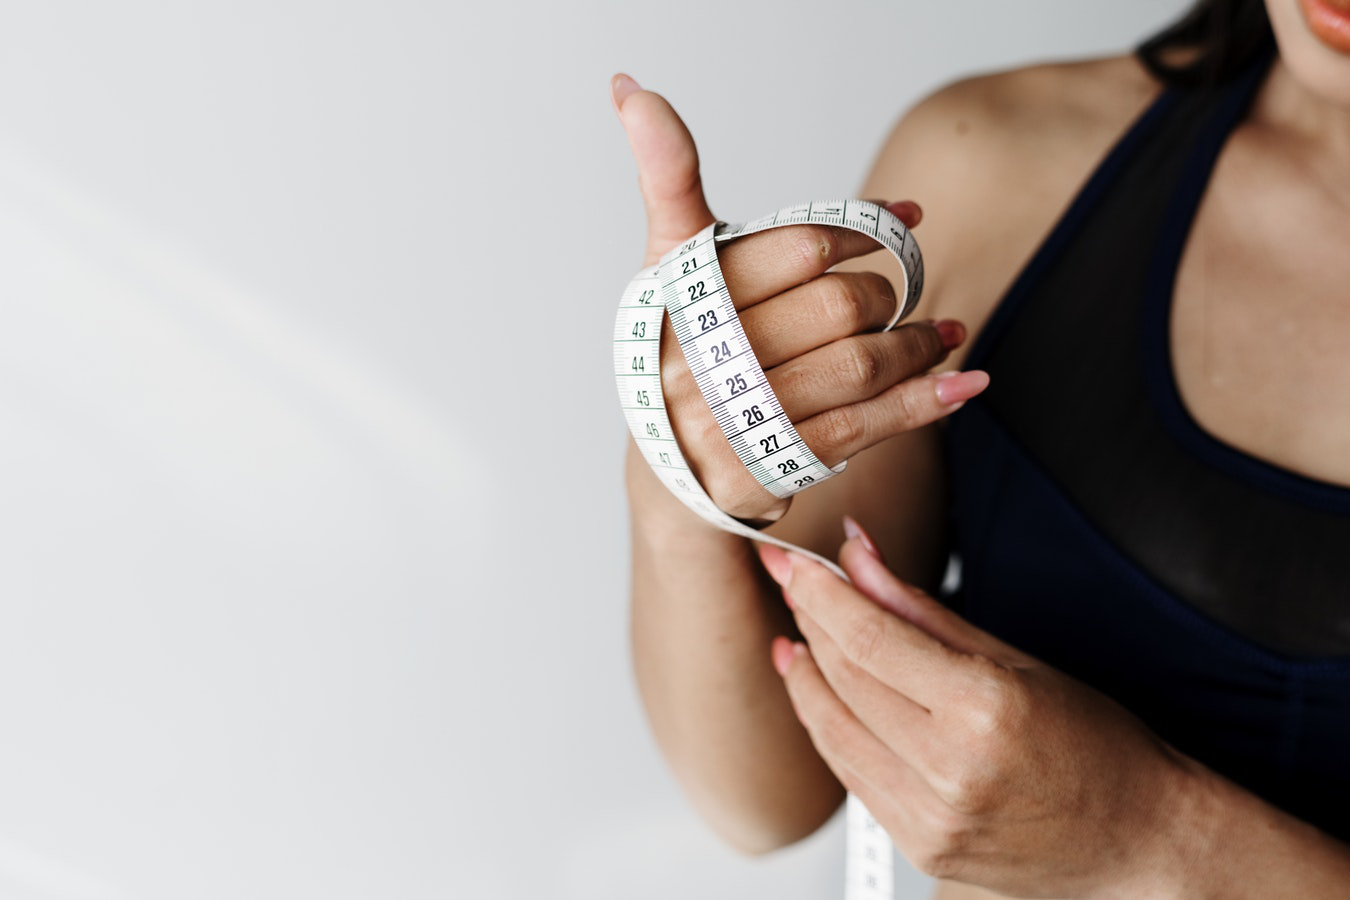 Weight Loss Results: What to Do About My Weight?